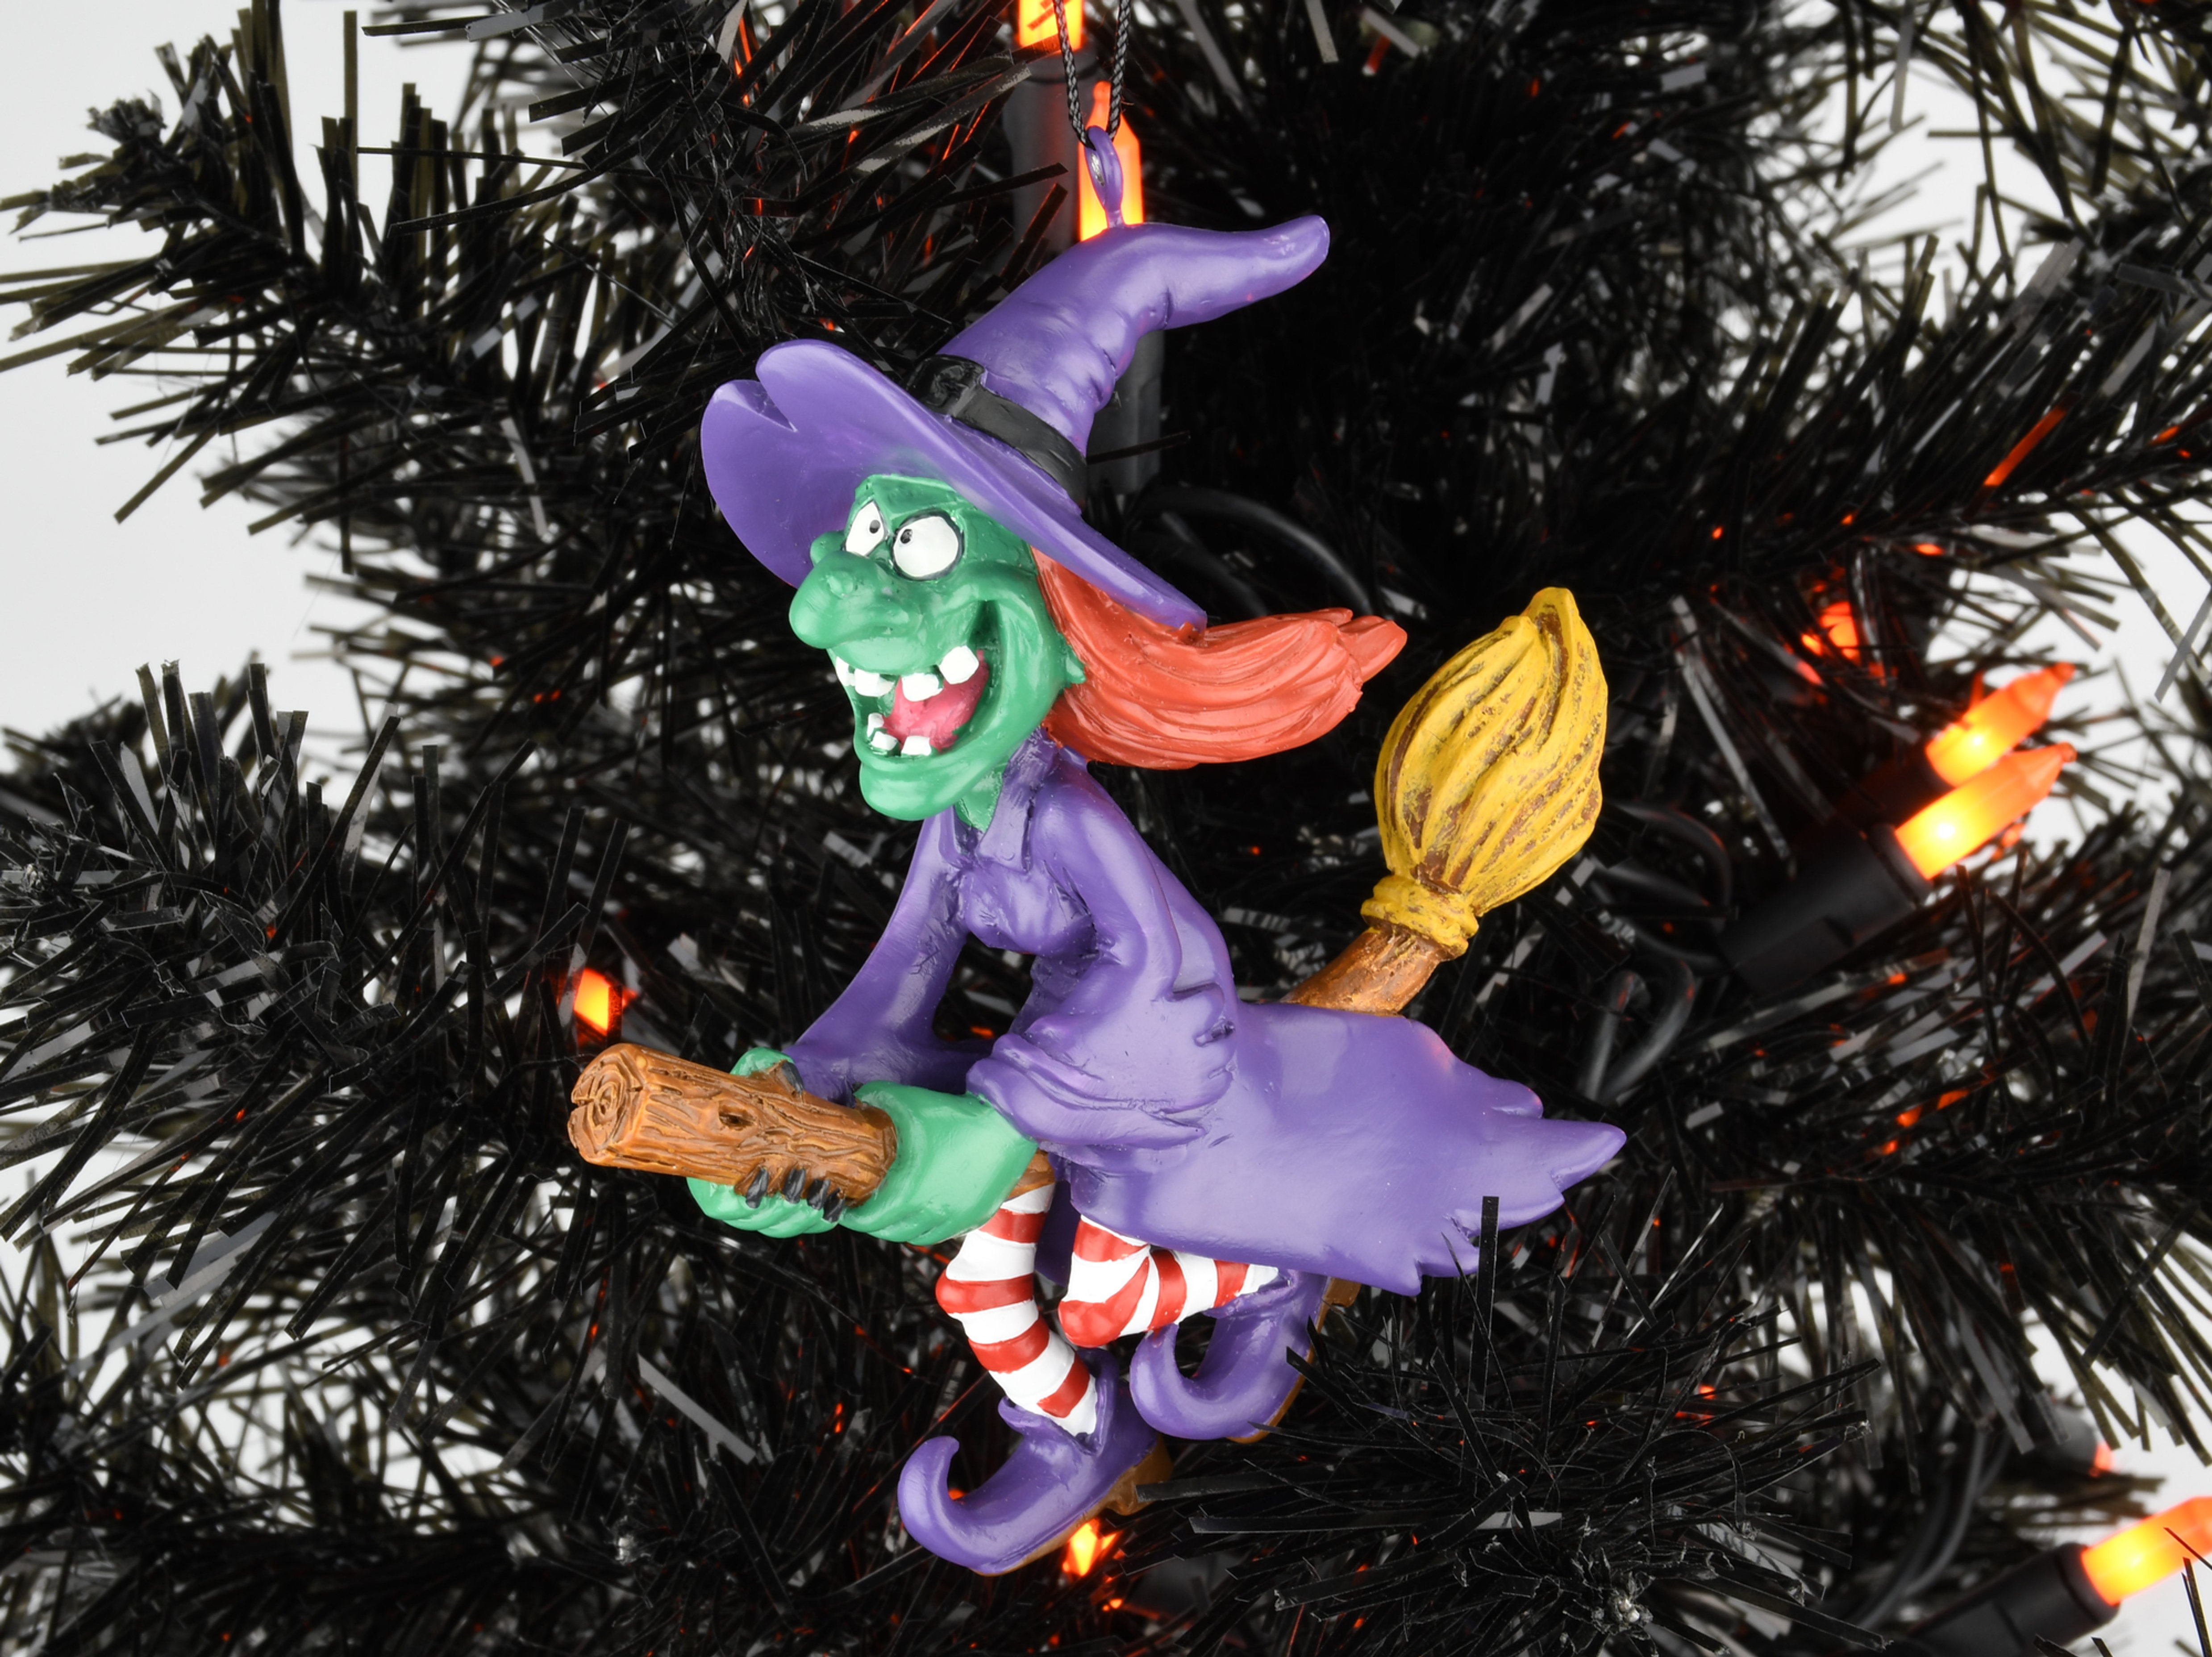 Witch Flying Into Tree Decoration  from static.wixstatic.com